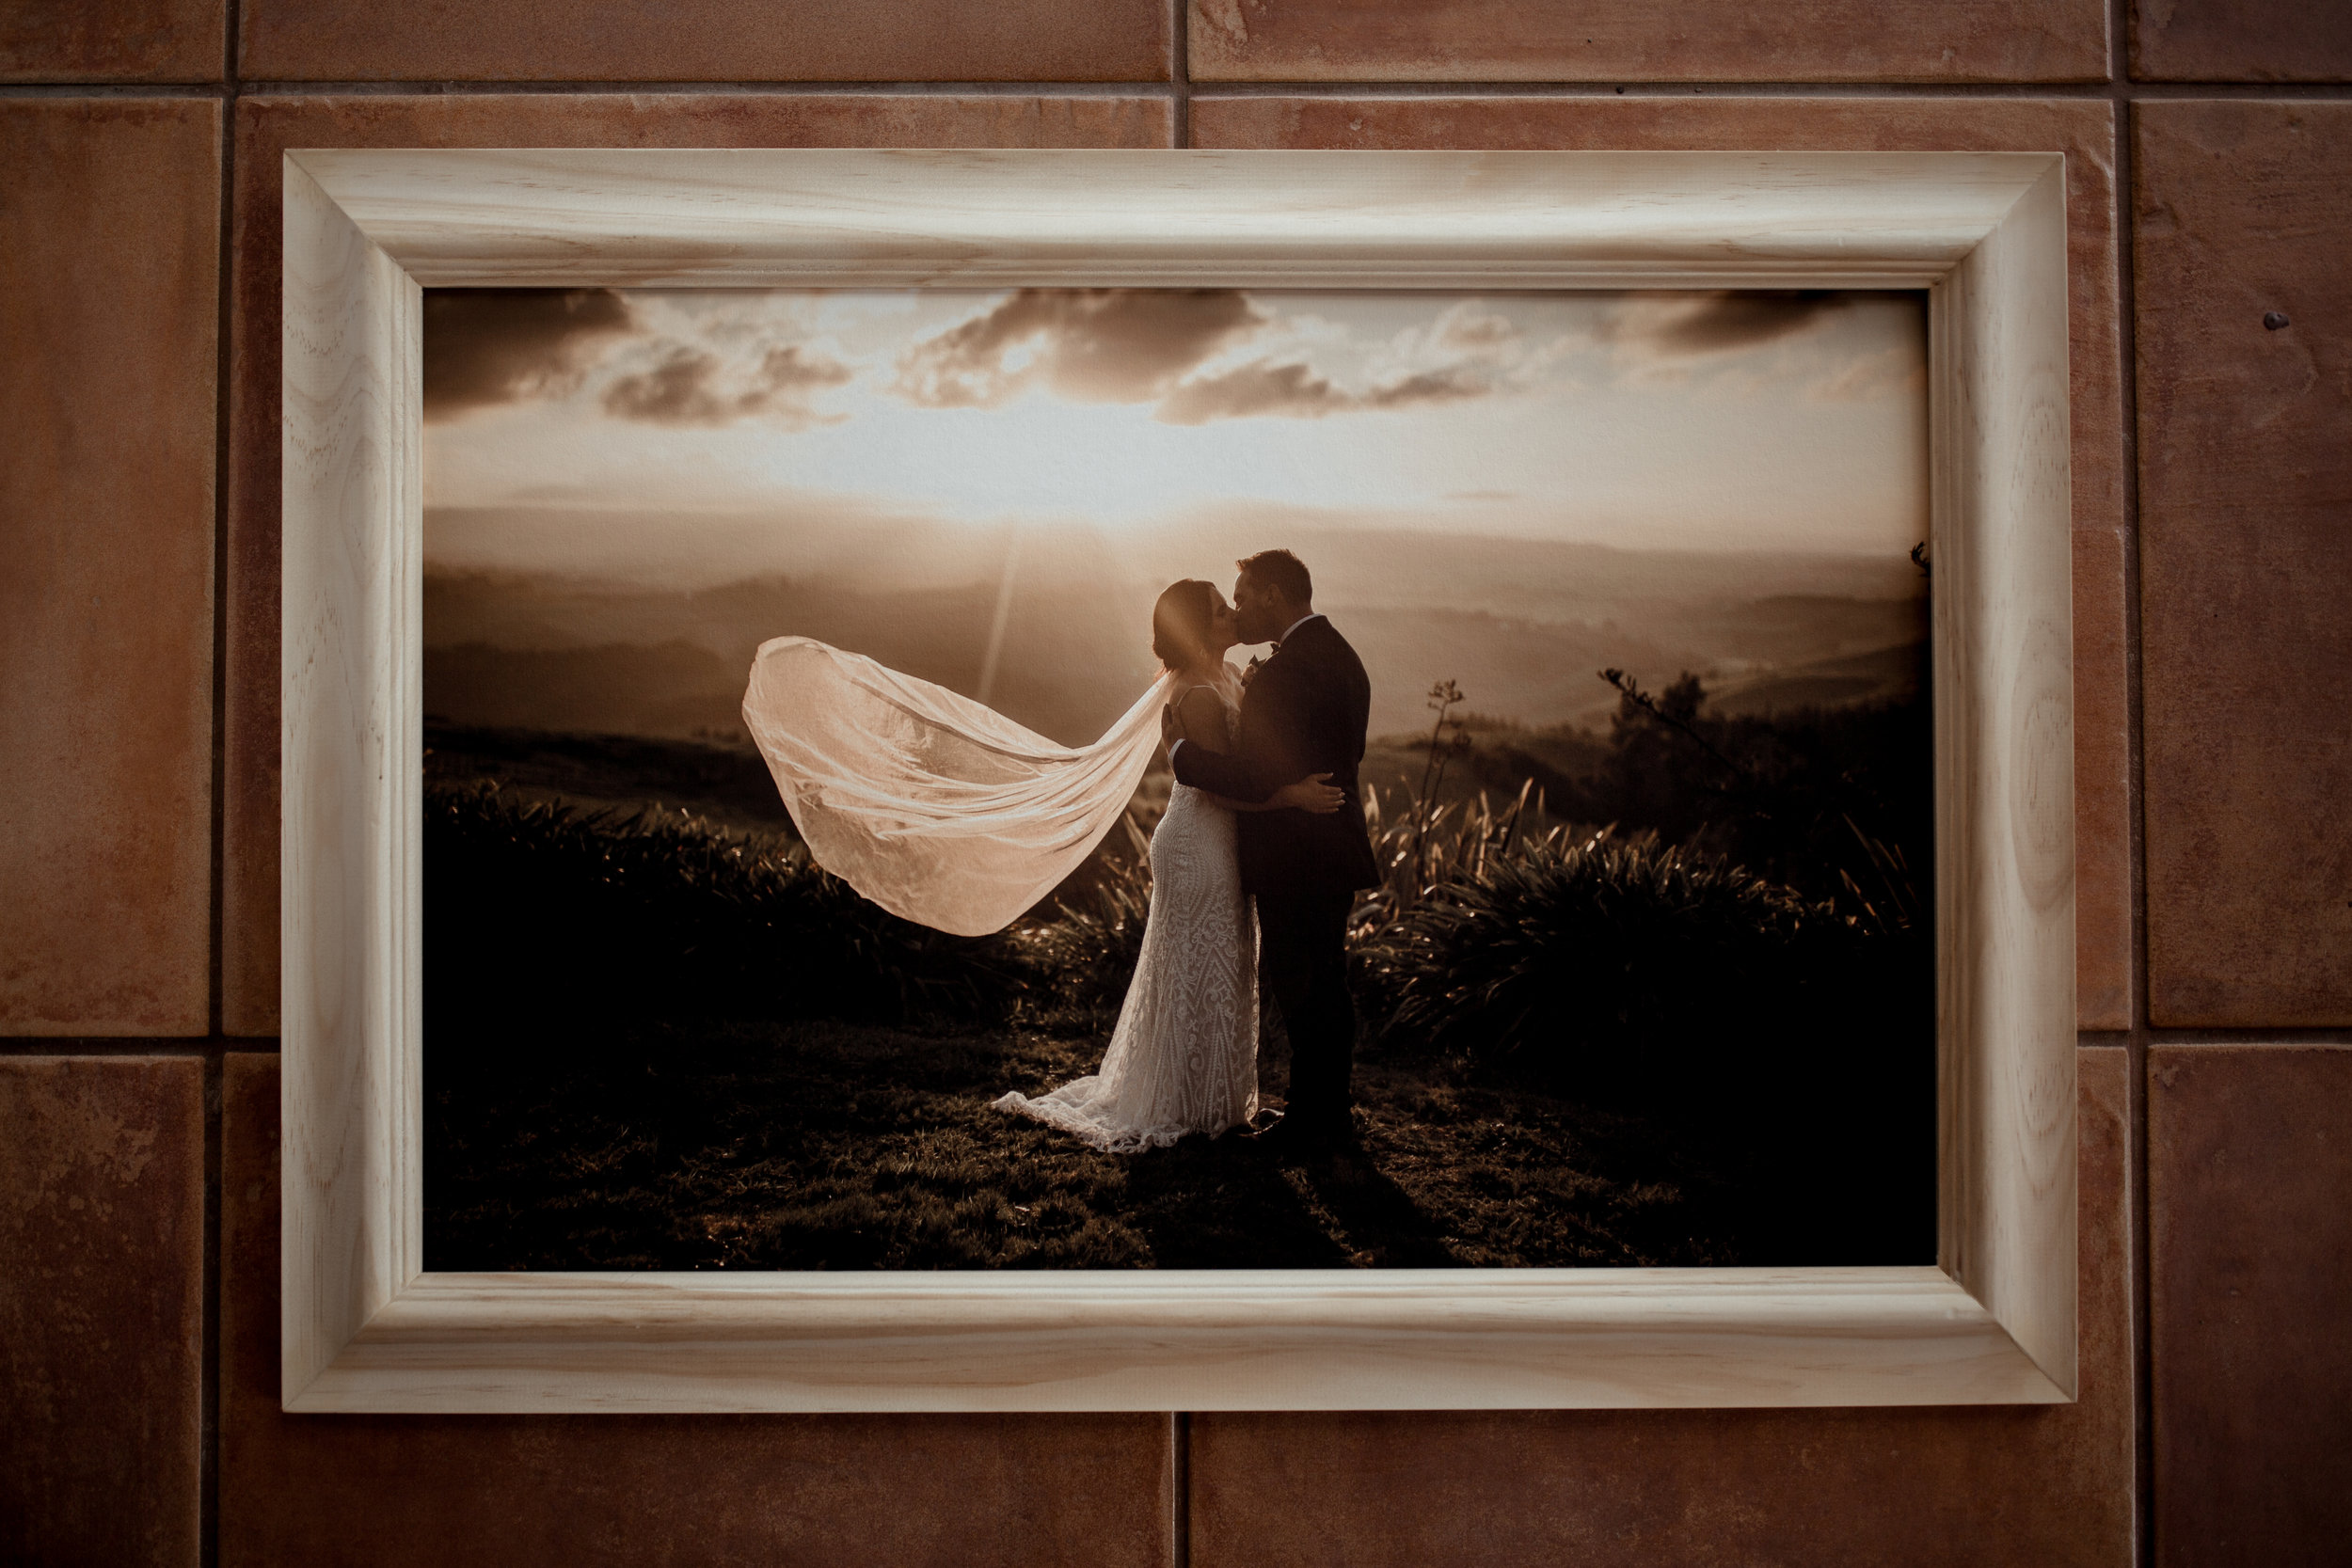 Fine Art Prints - These textured, museum quality fine art prints are an amazing way to show off your spectacular moments, framed in gorgeous raw wooden frames that really pop and bring your moments to life.